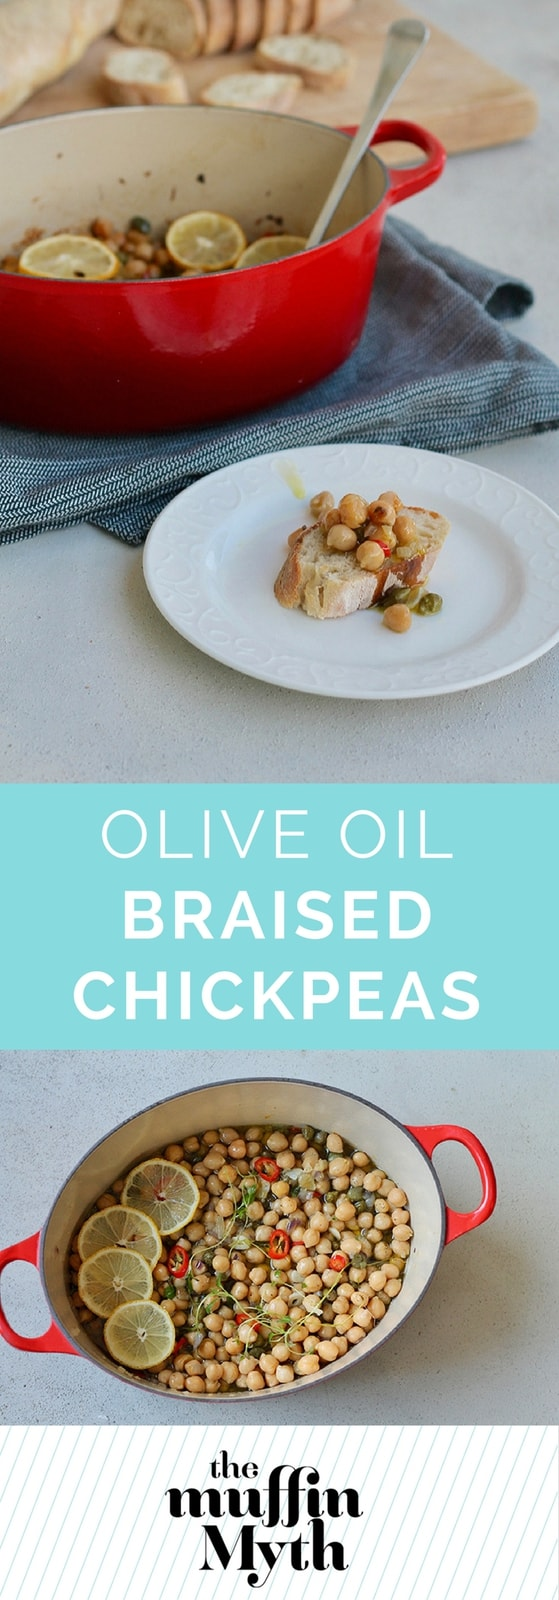 Olive Oil Braised Chickpeas are an incredibly simple, elegant, and delicious appetizer. Easily vegan, or fancied up with a bit of cheese over the top.